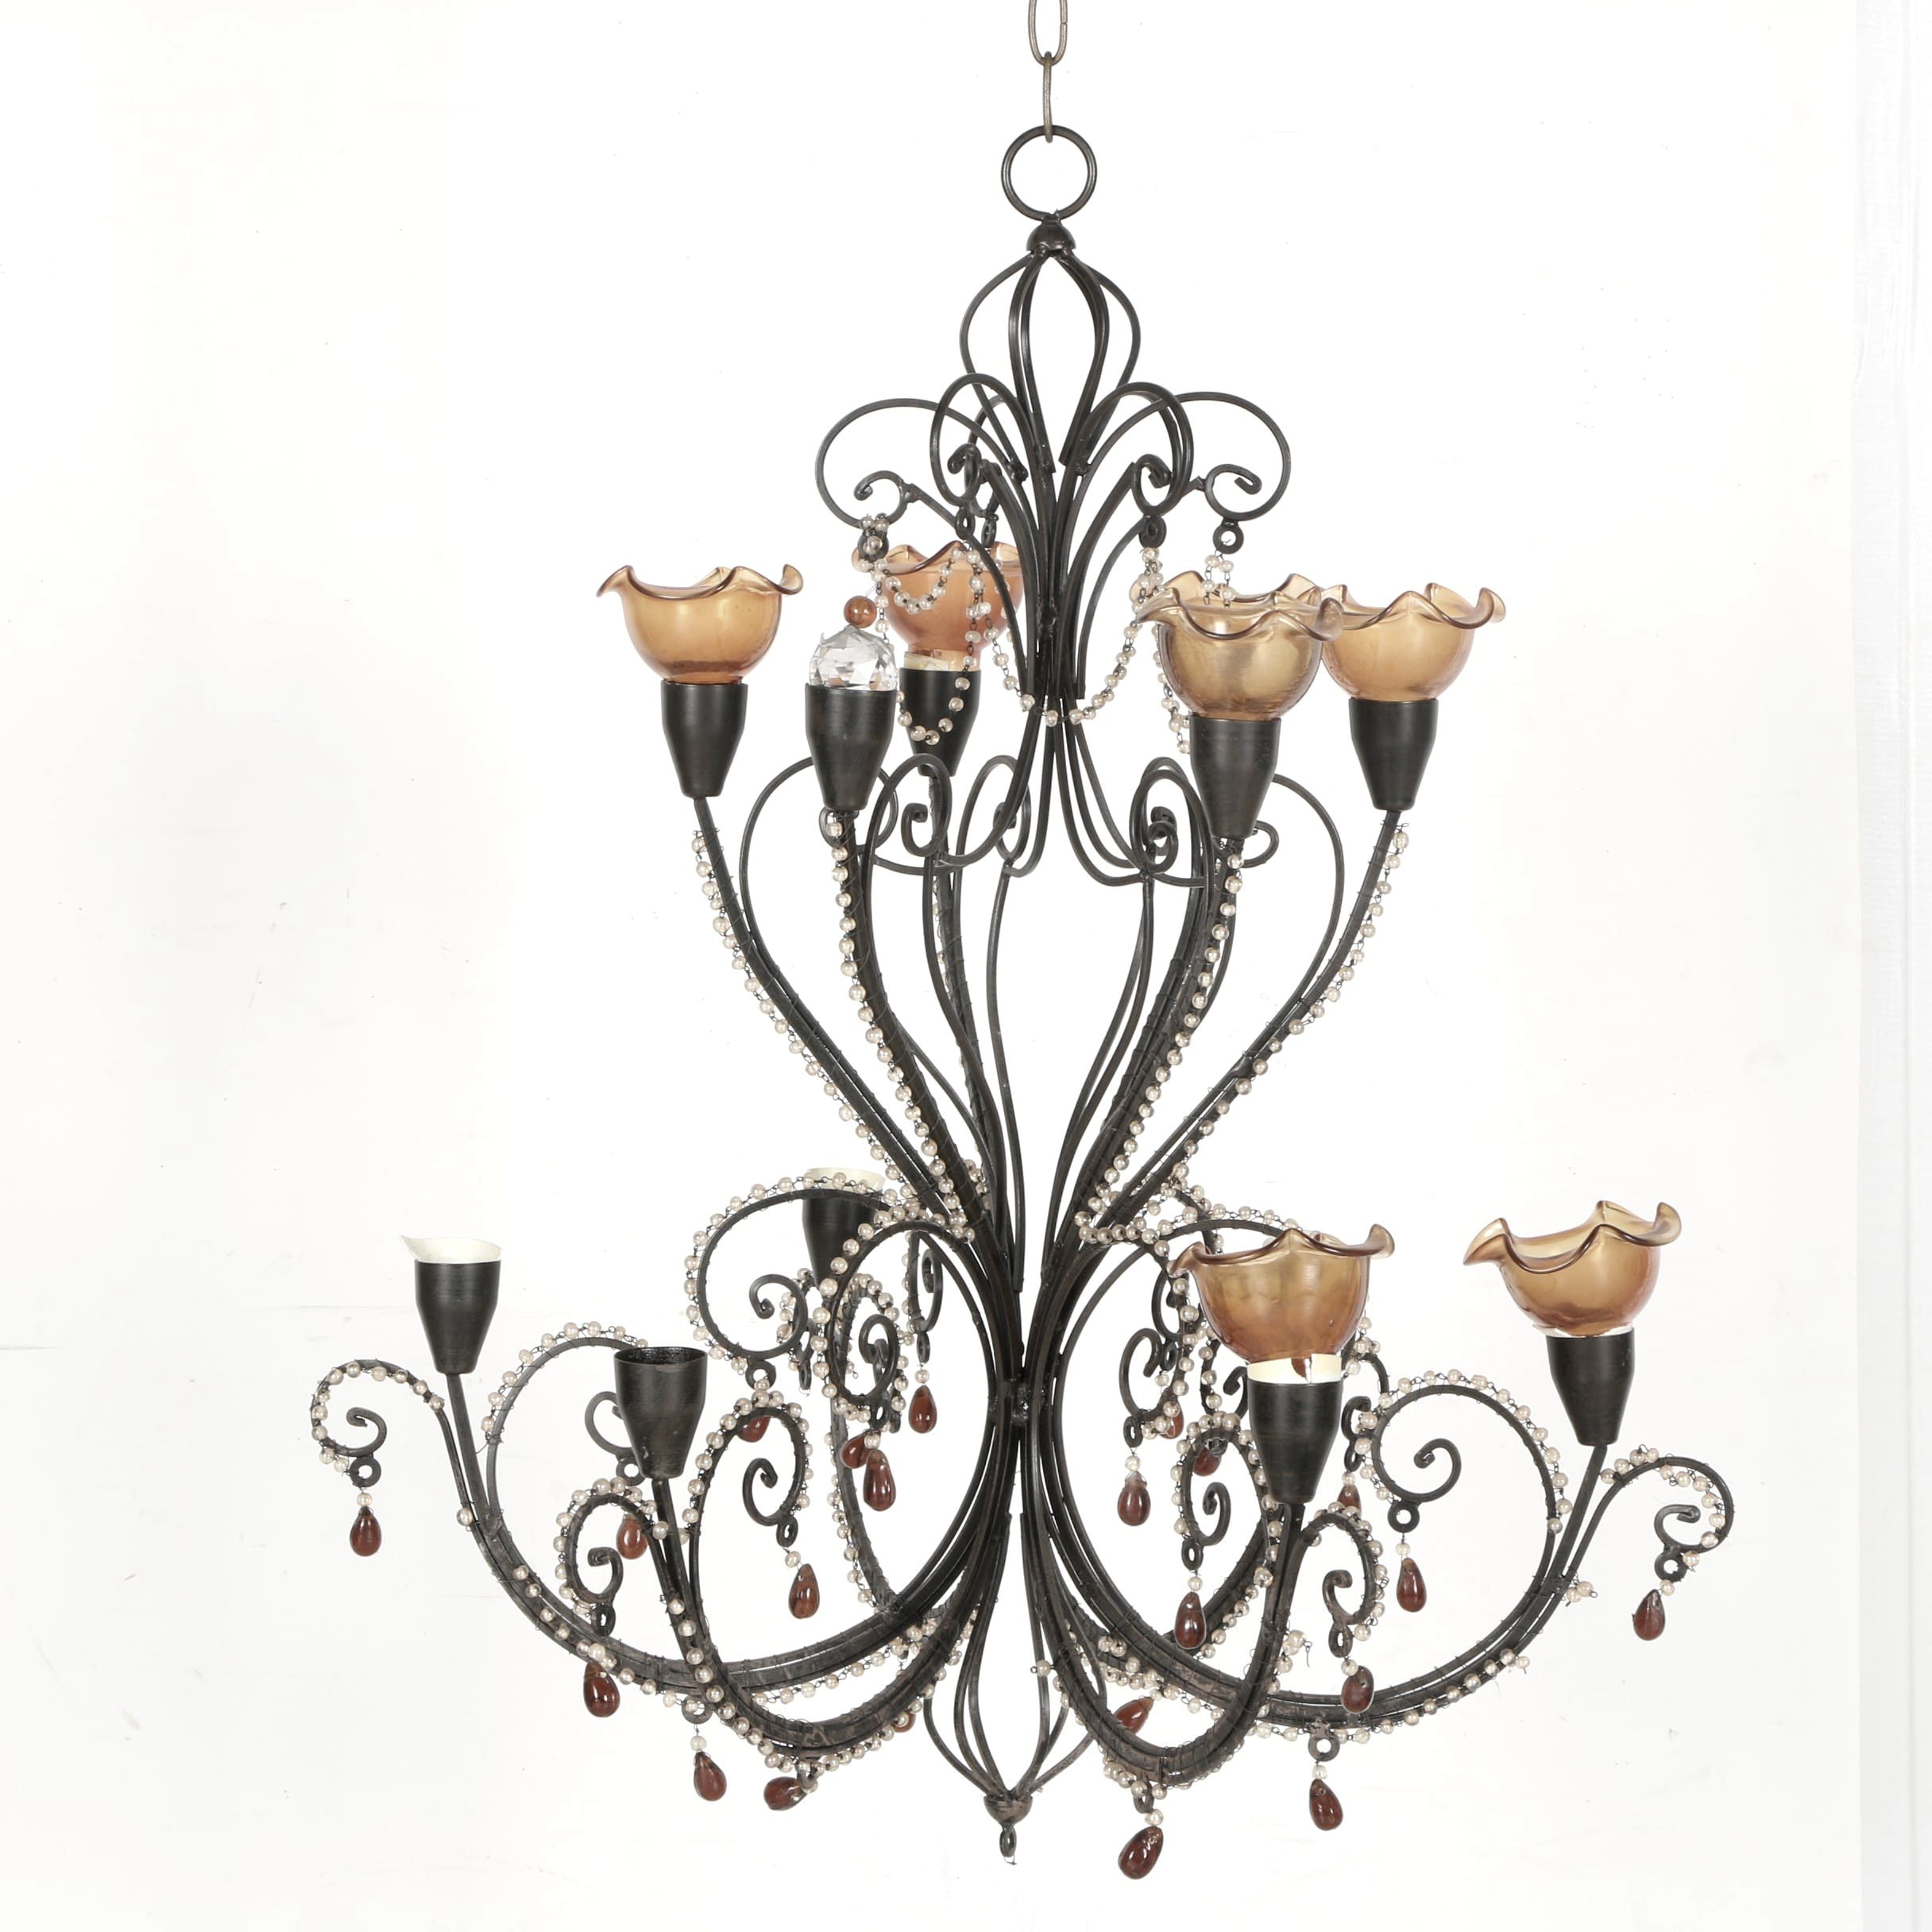 Chandelier With Black Finish and Amber Glass Shades